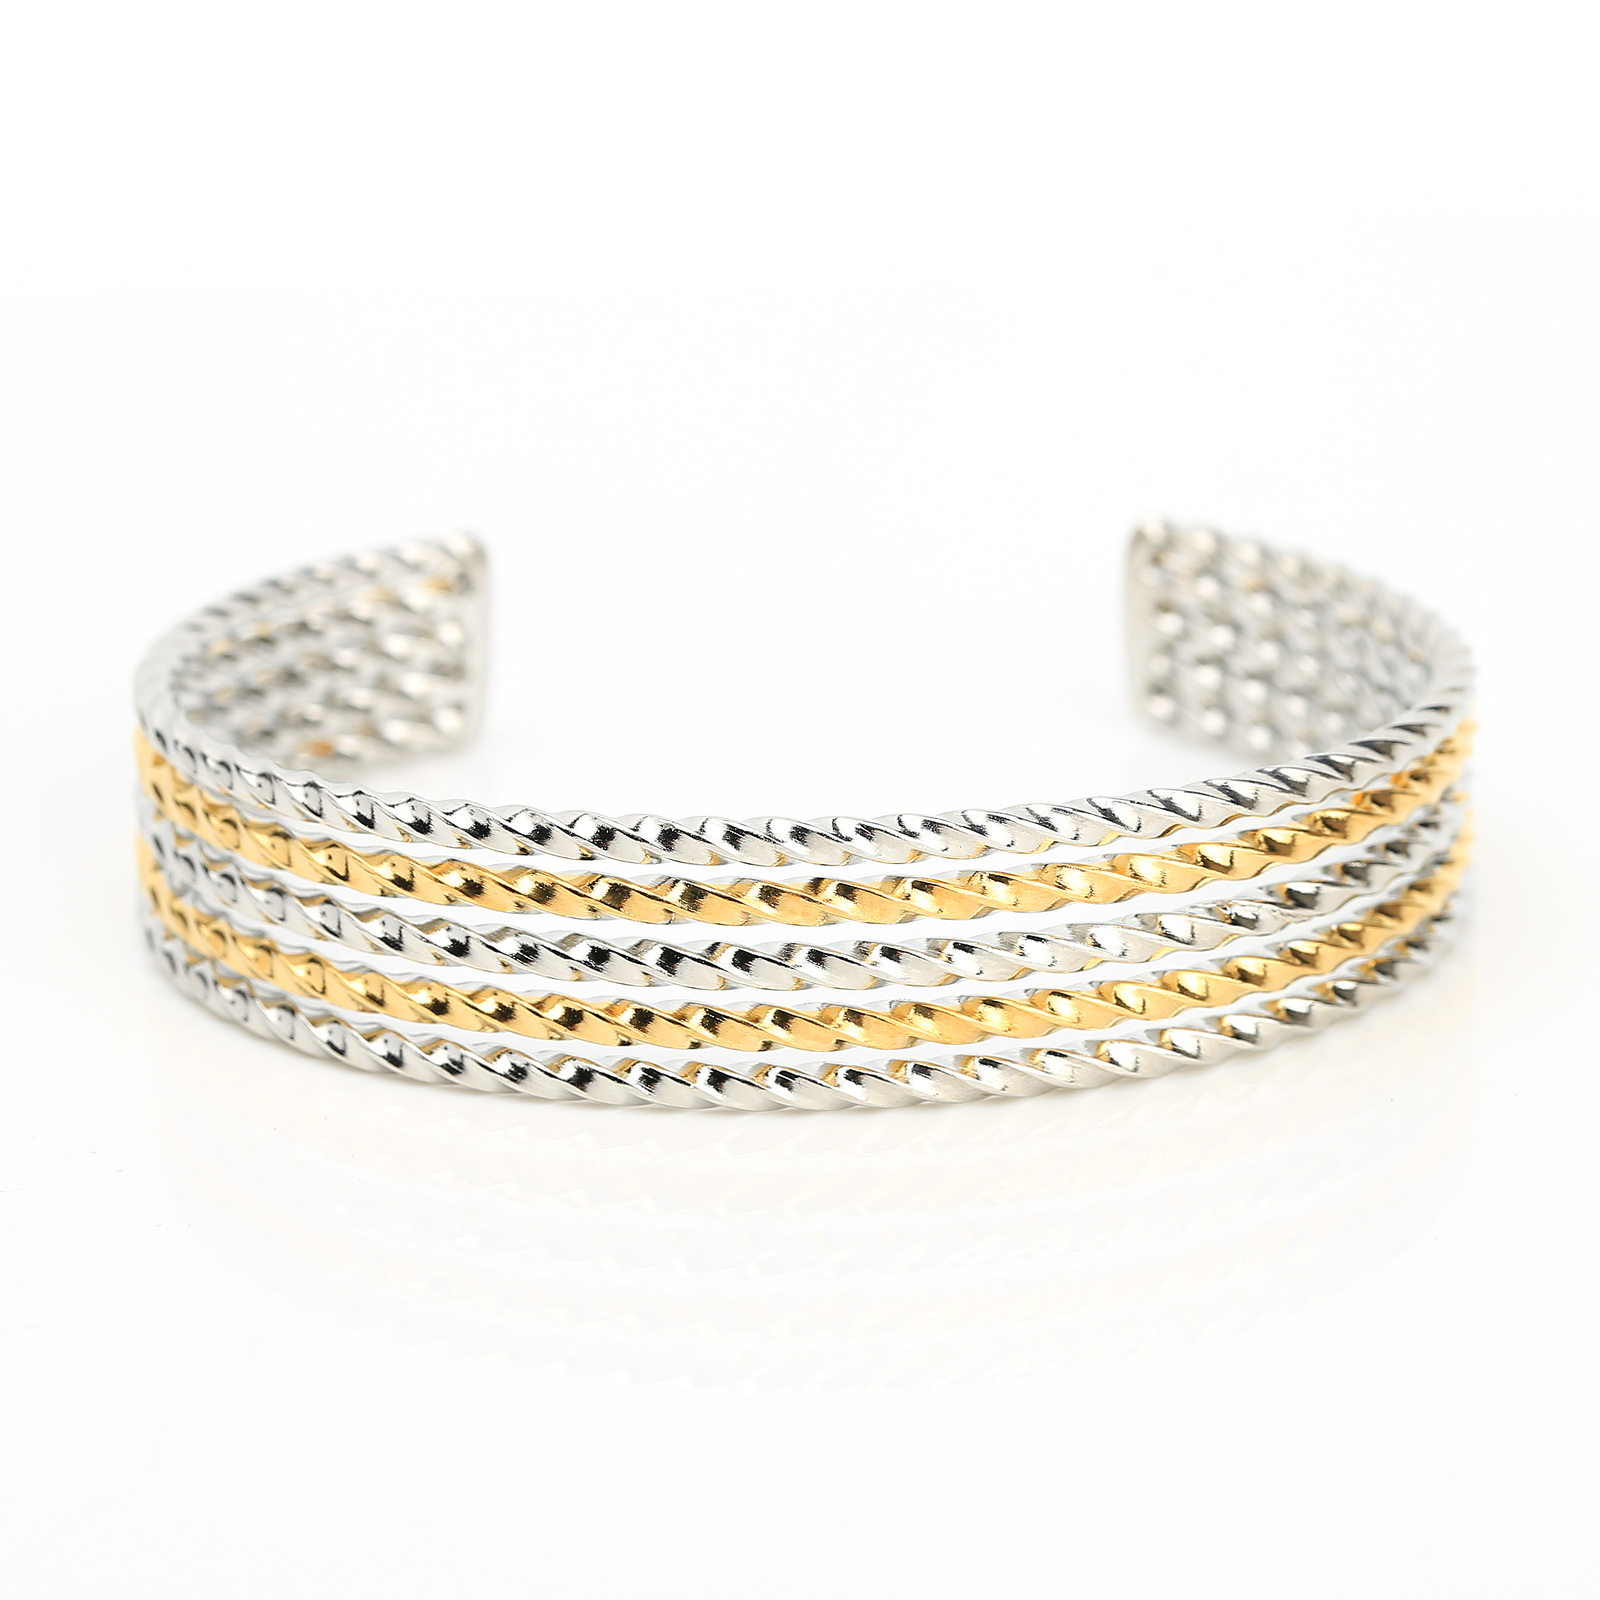 Gold & Silver Tone (Two-Tone) Twisted Bangle Bracelet Cuff- United Elegance